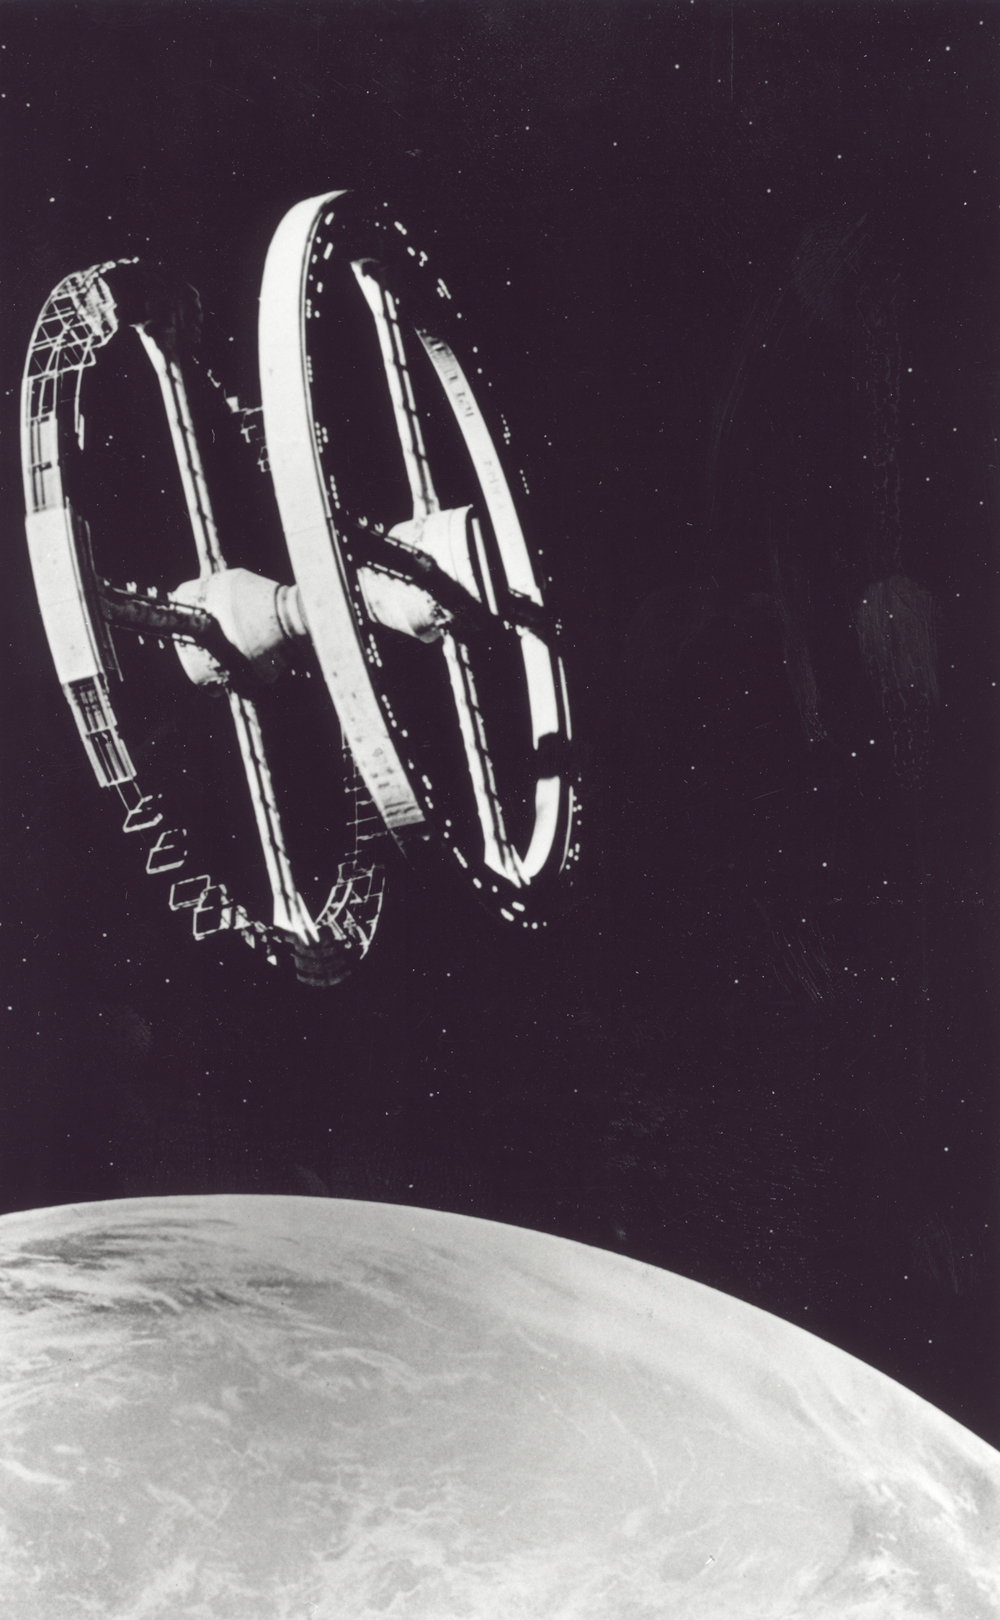 Space History Photo: 2001:A Space Odyssey Space Station